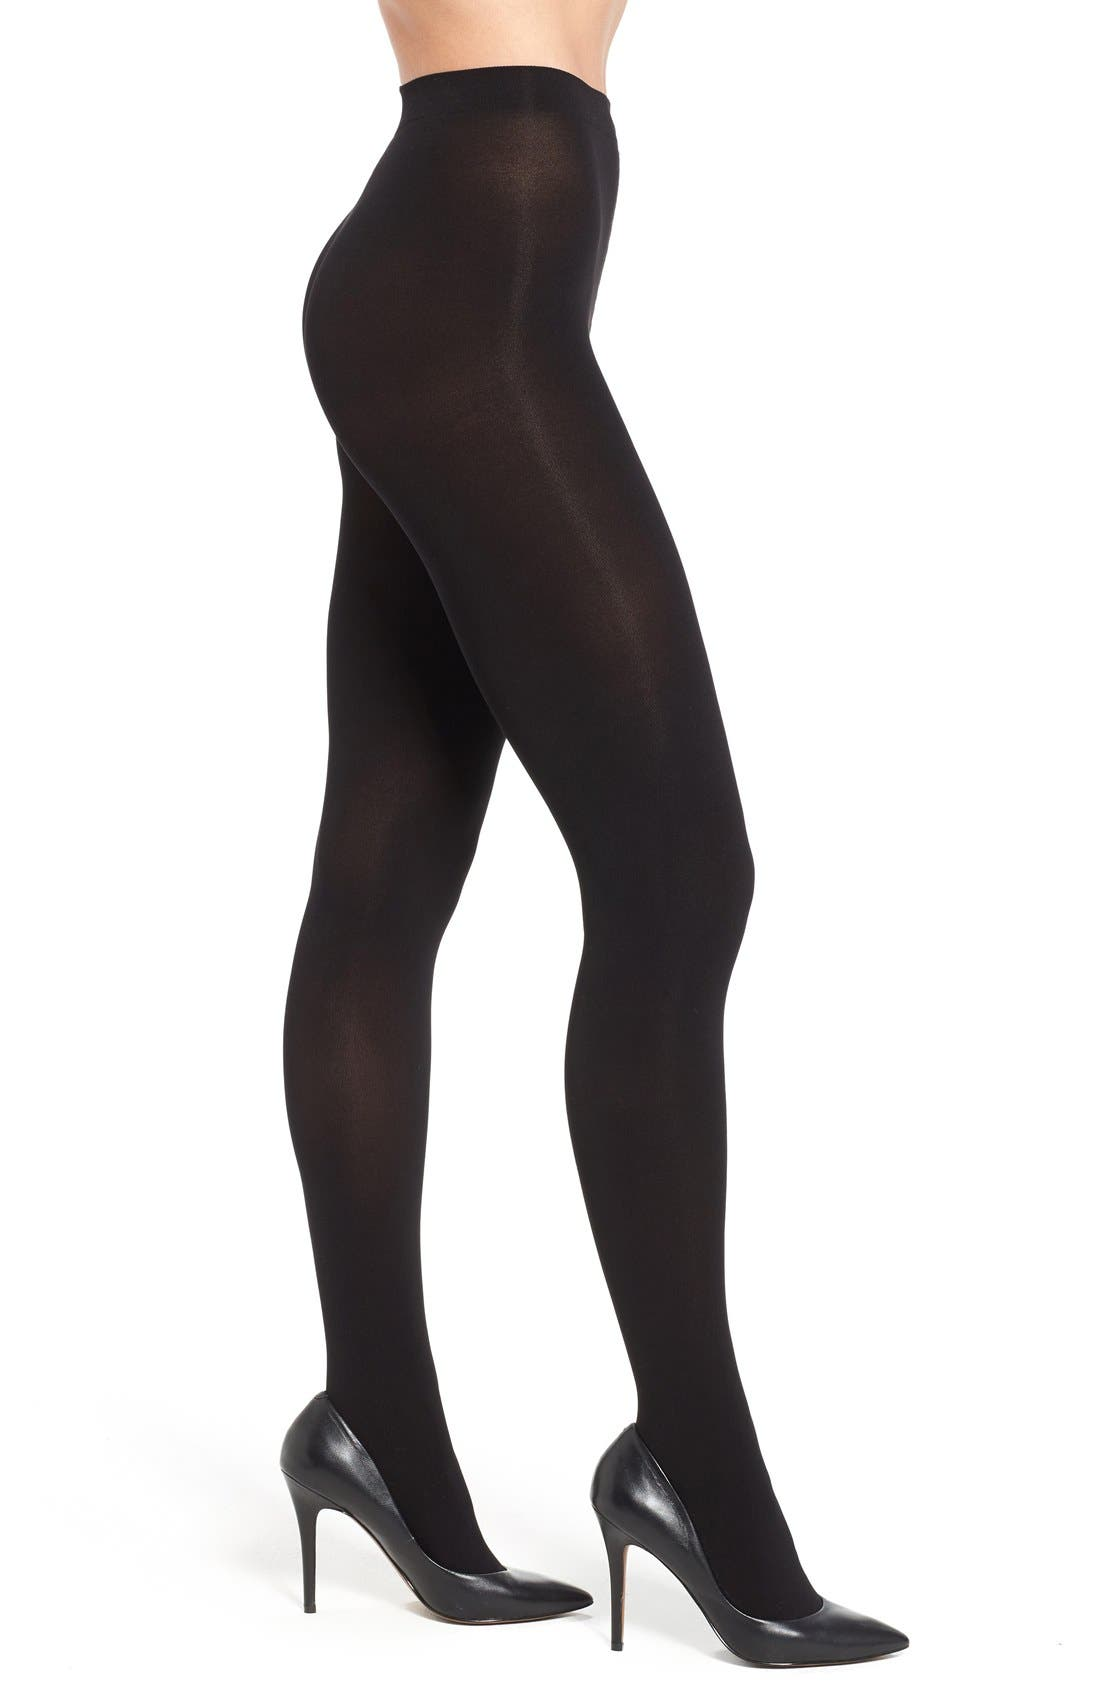 Alternate Image 1 Selected - Hue 'Parris' Opaque Tights